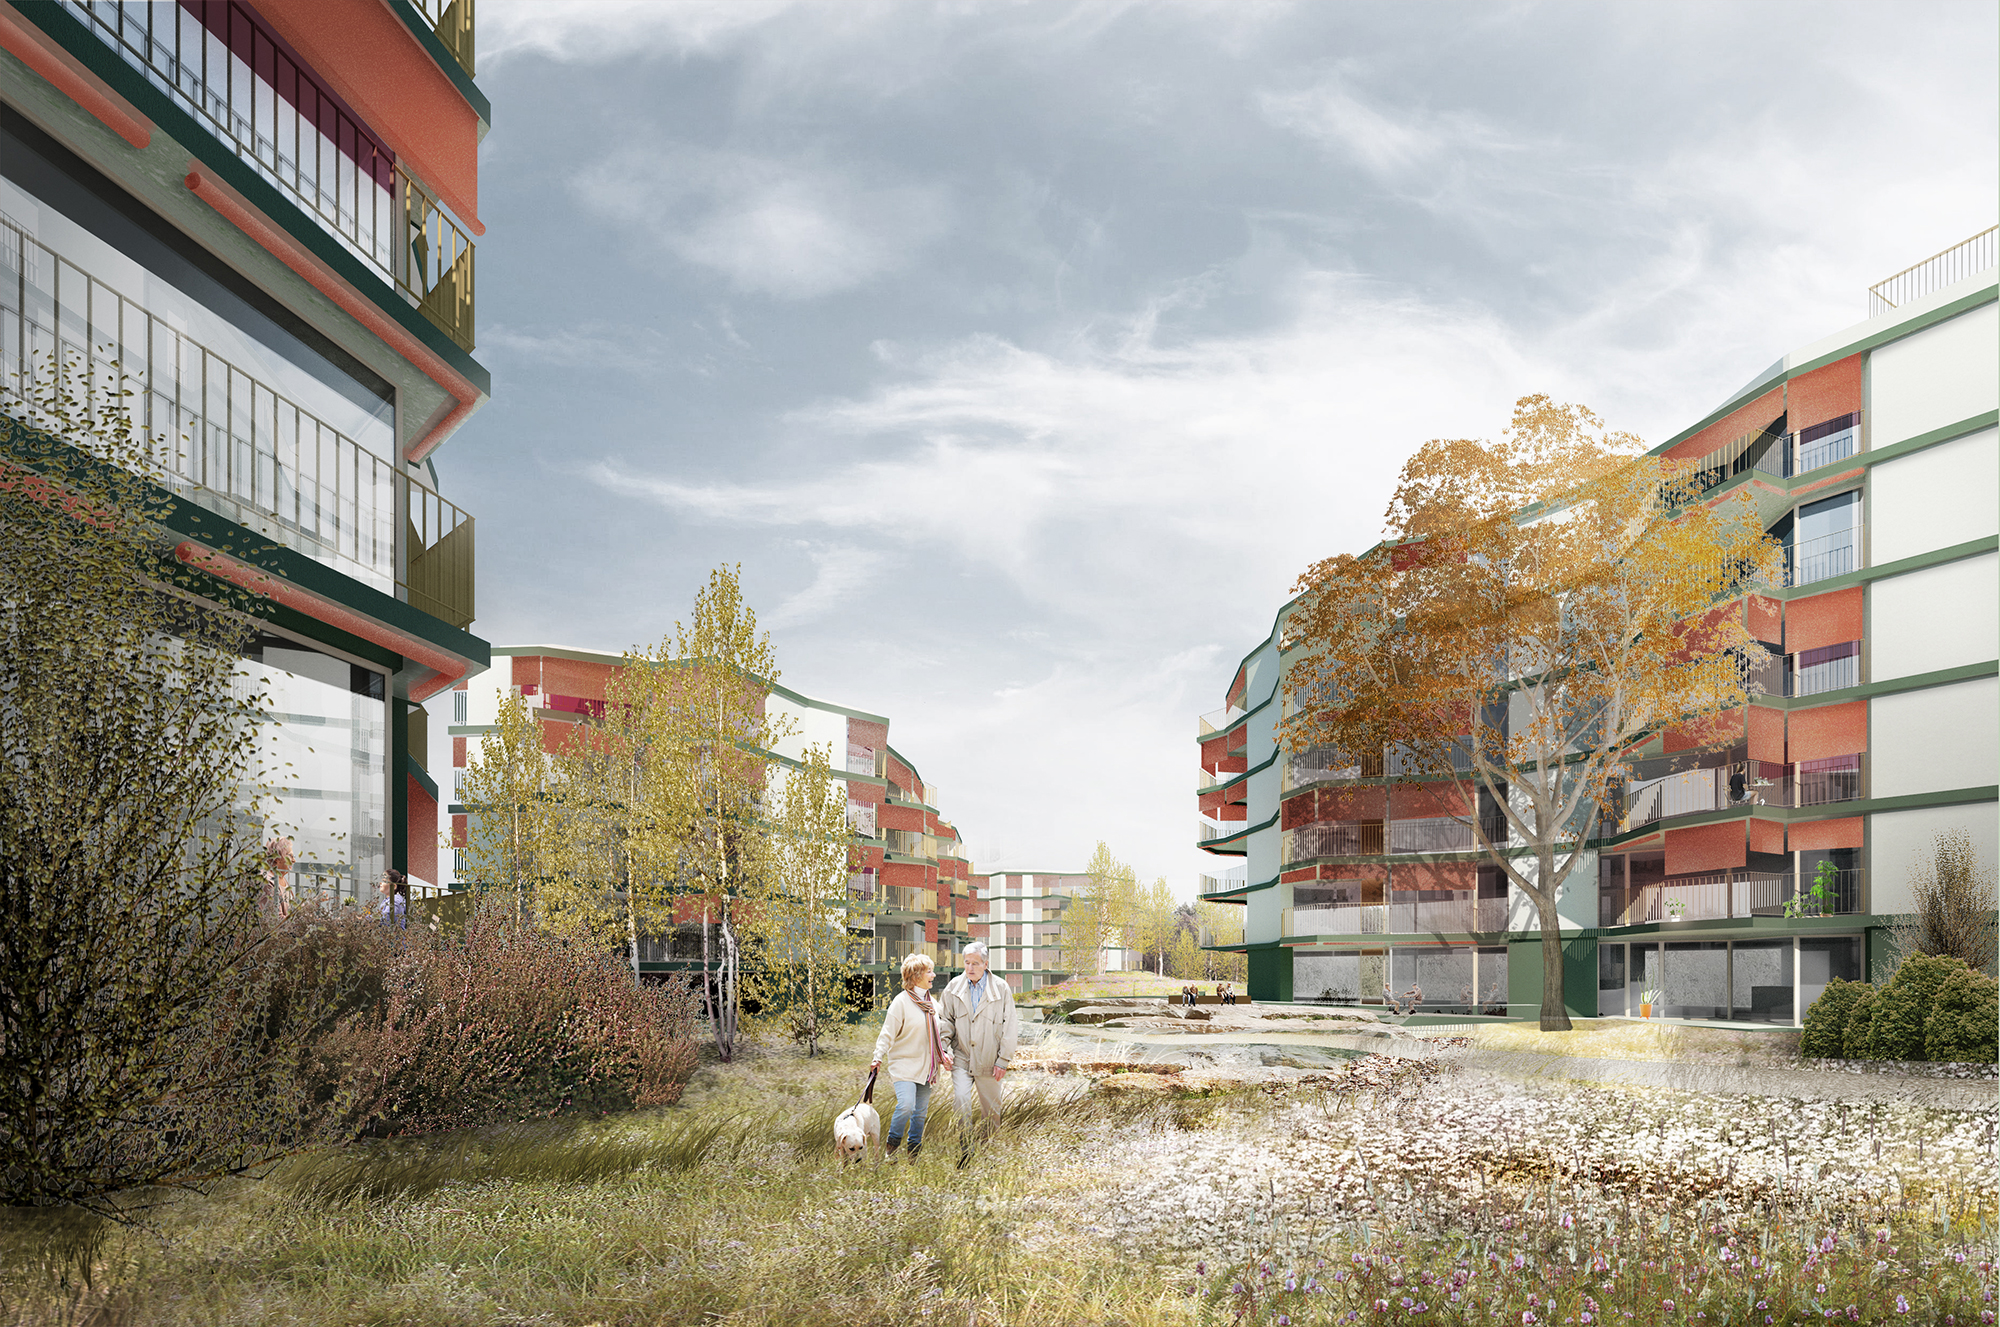 zurich elderly housing saw espenhof nord